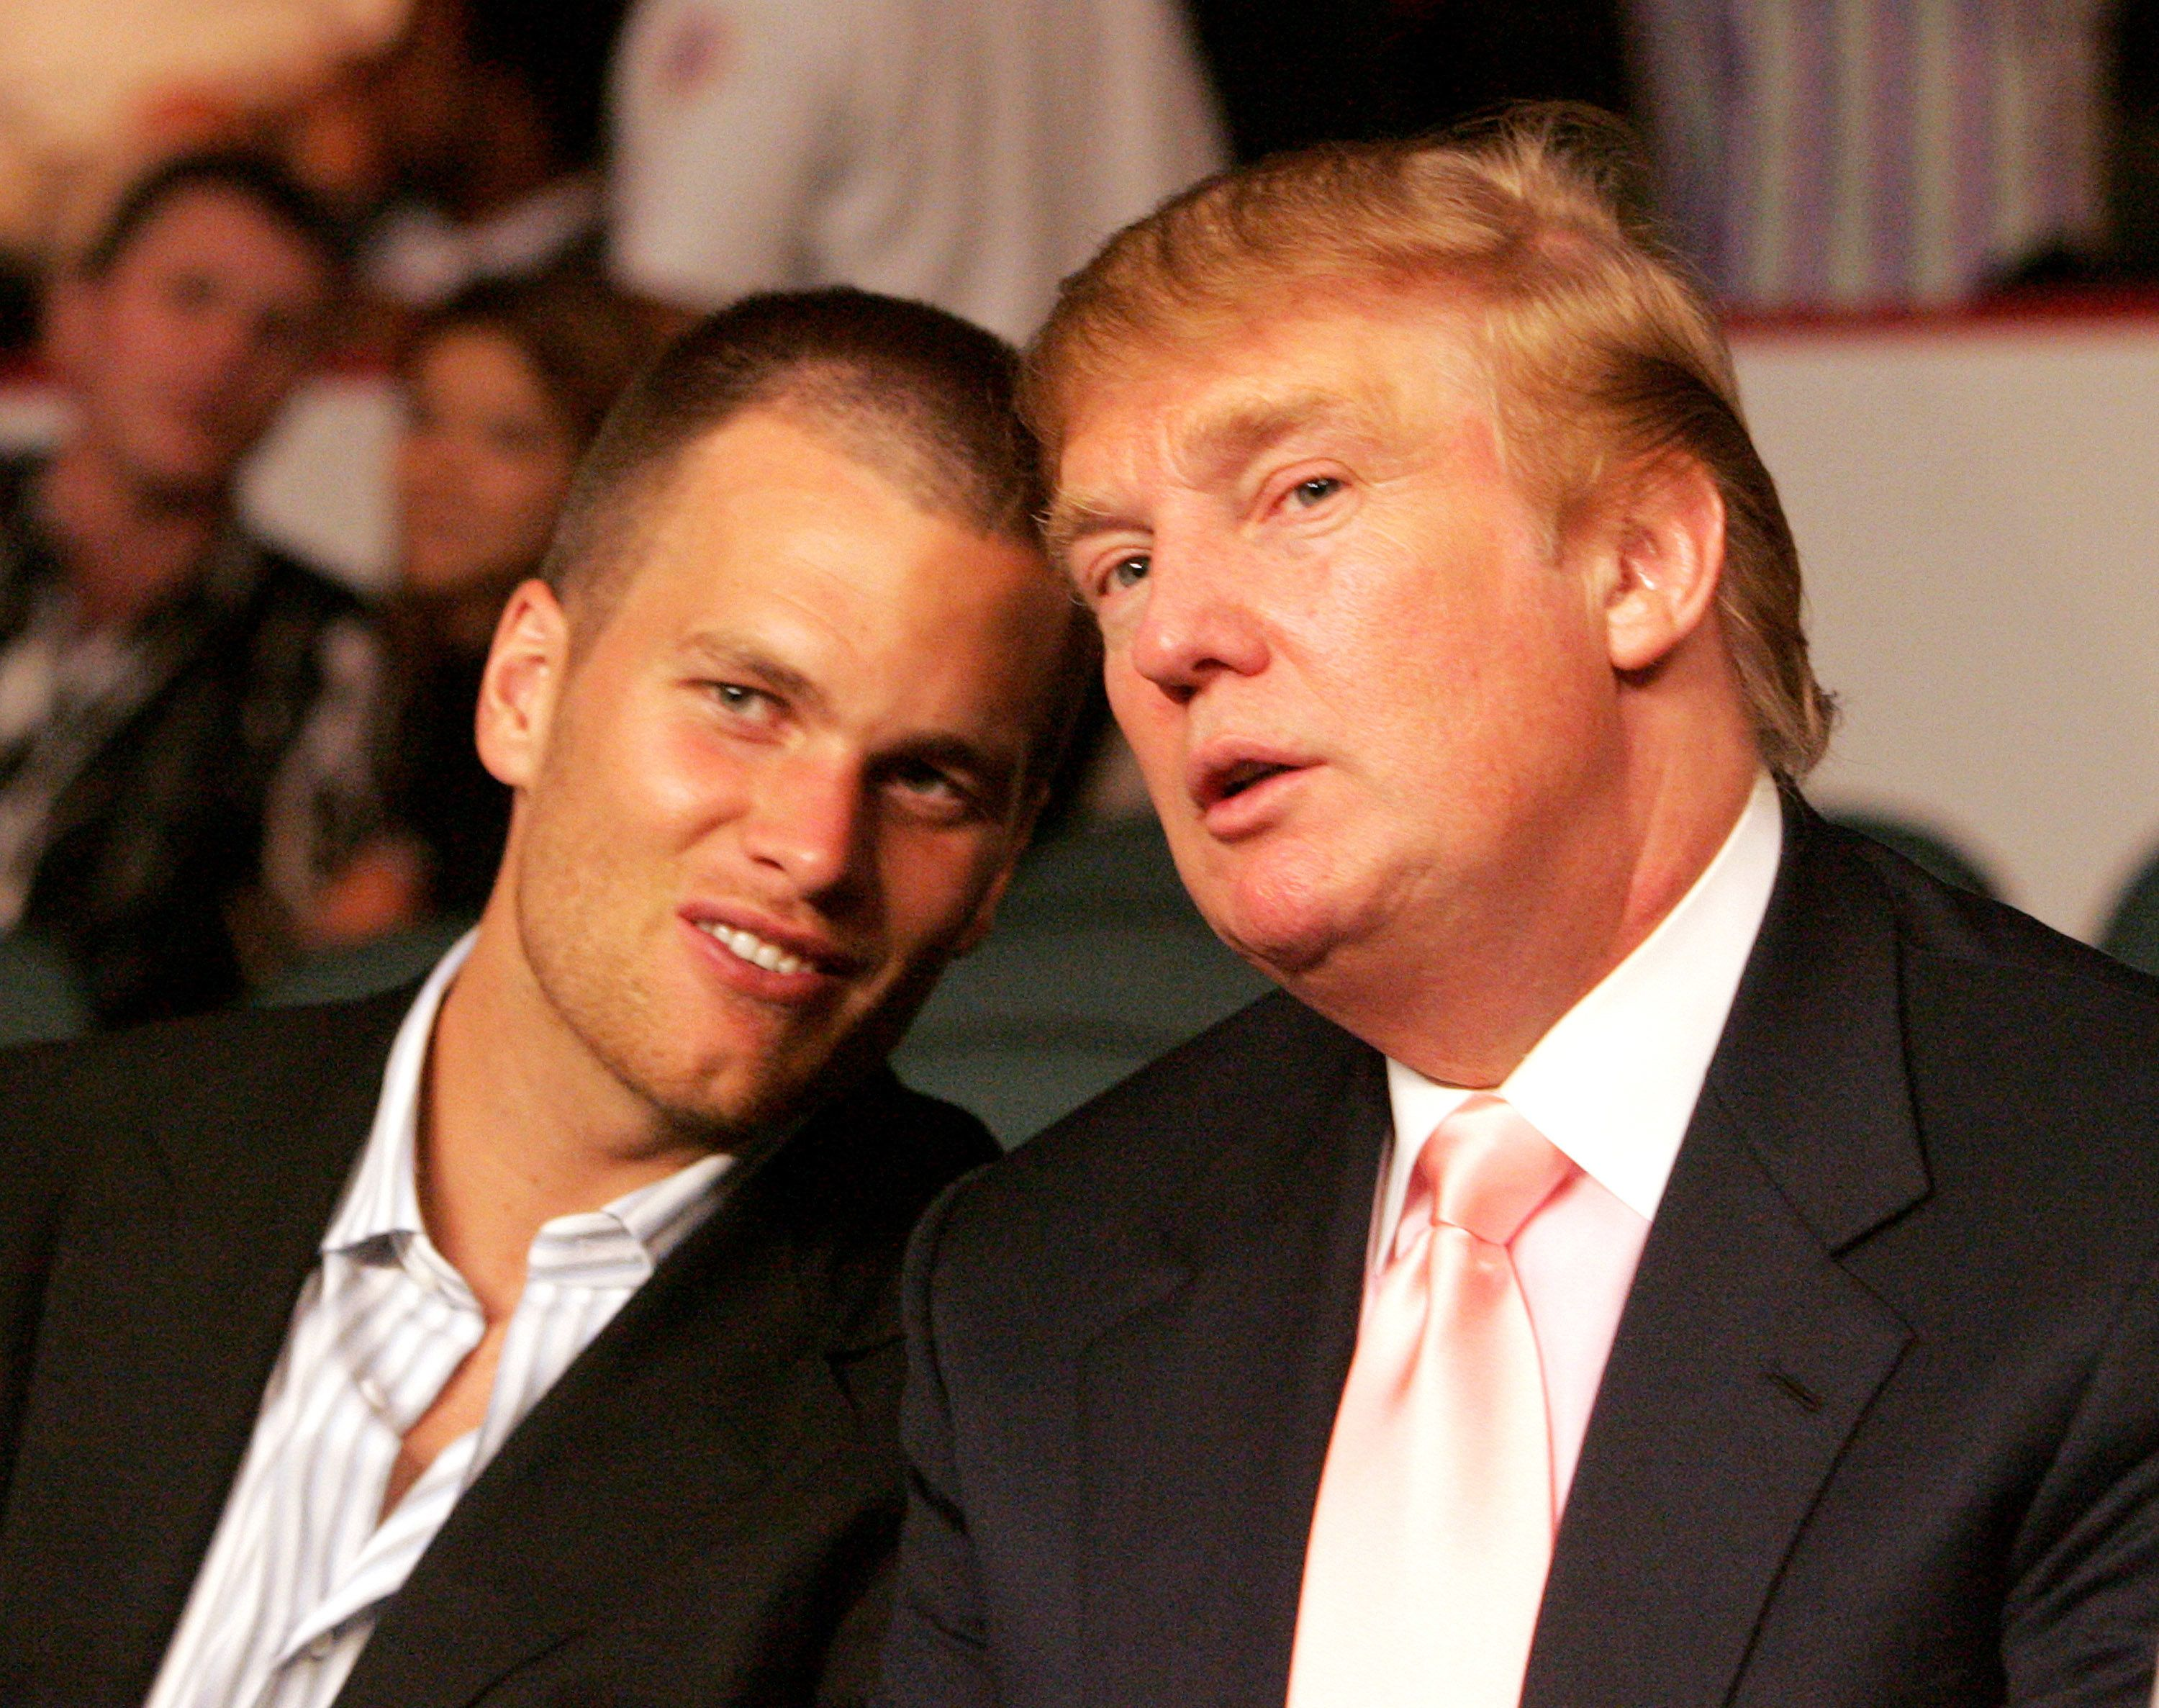 Famous guysTom Brady and Donald Trump have a moment.